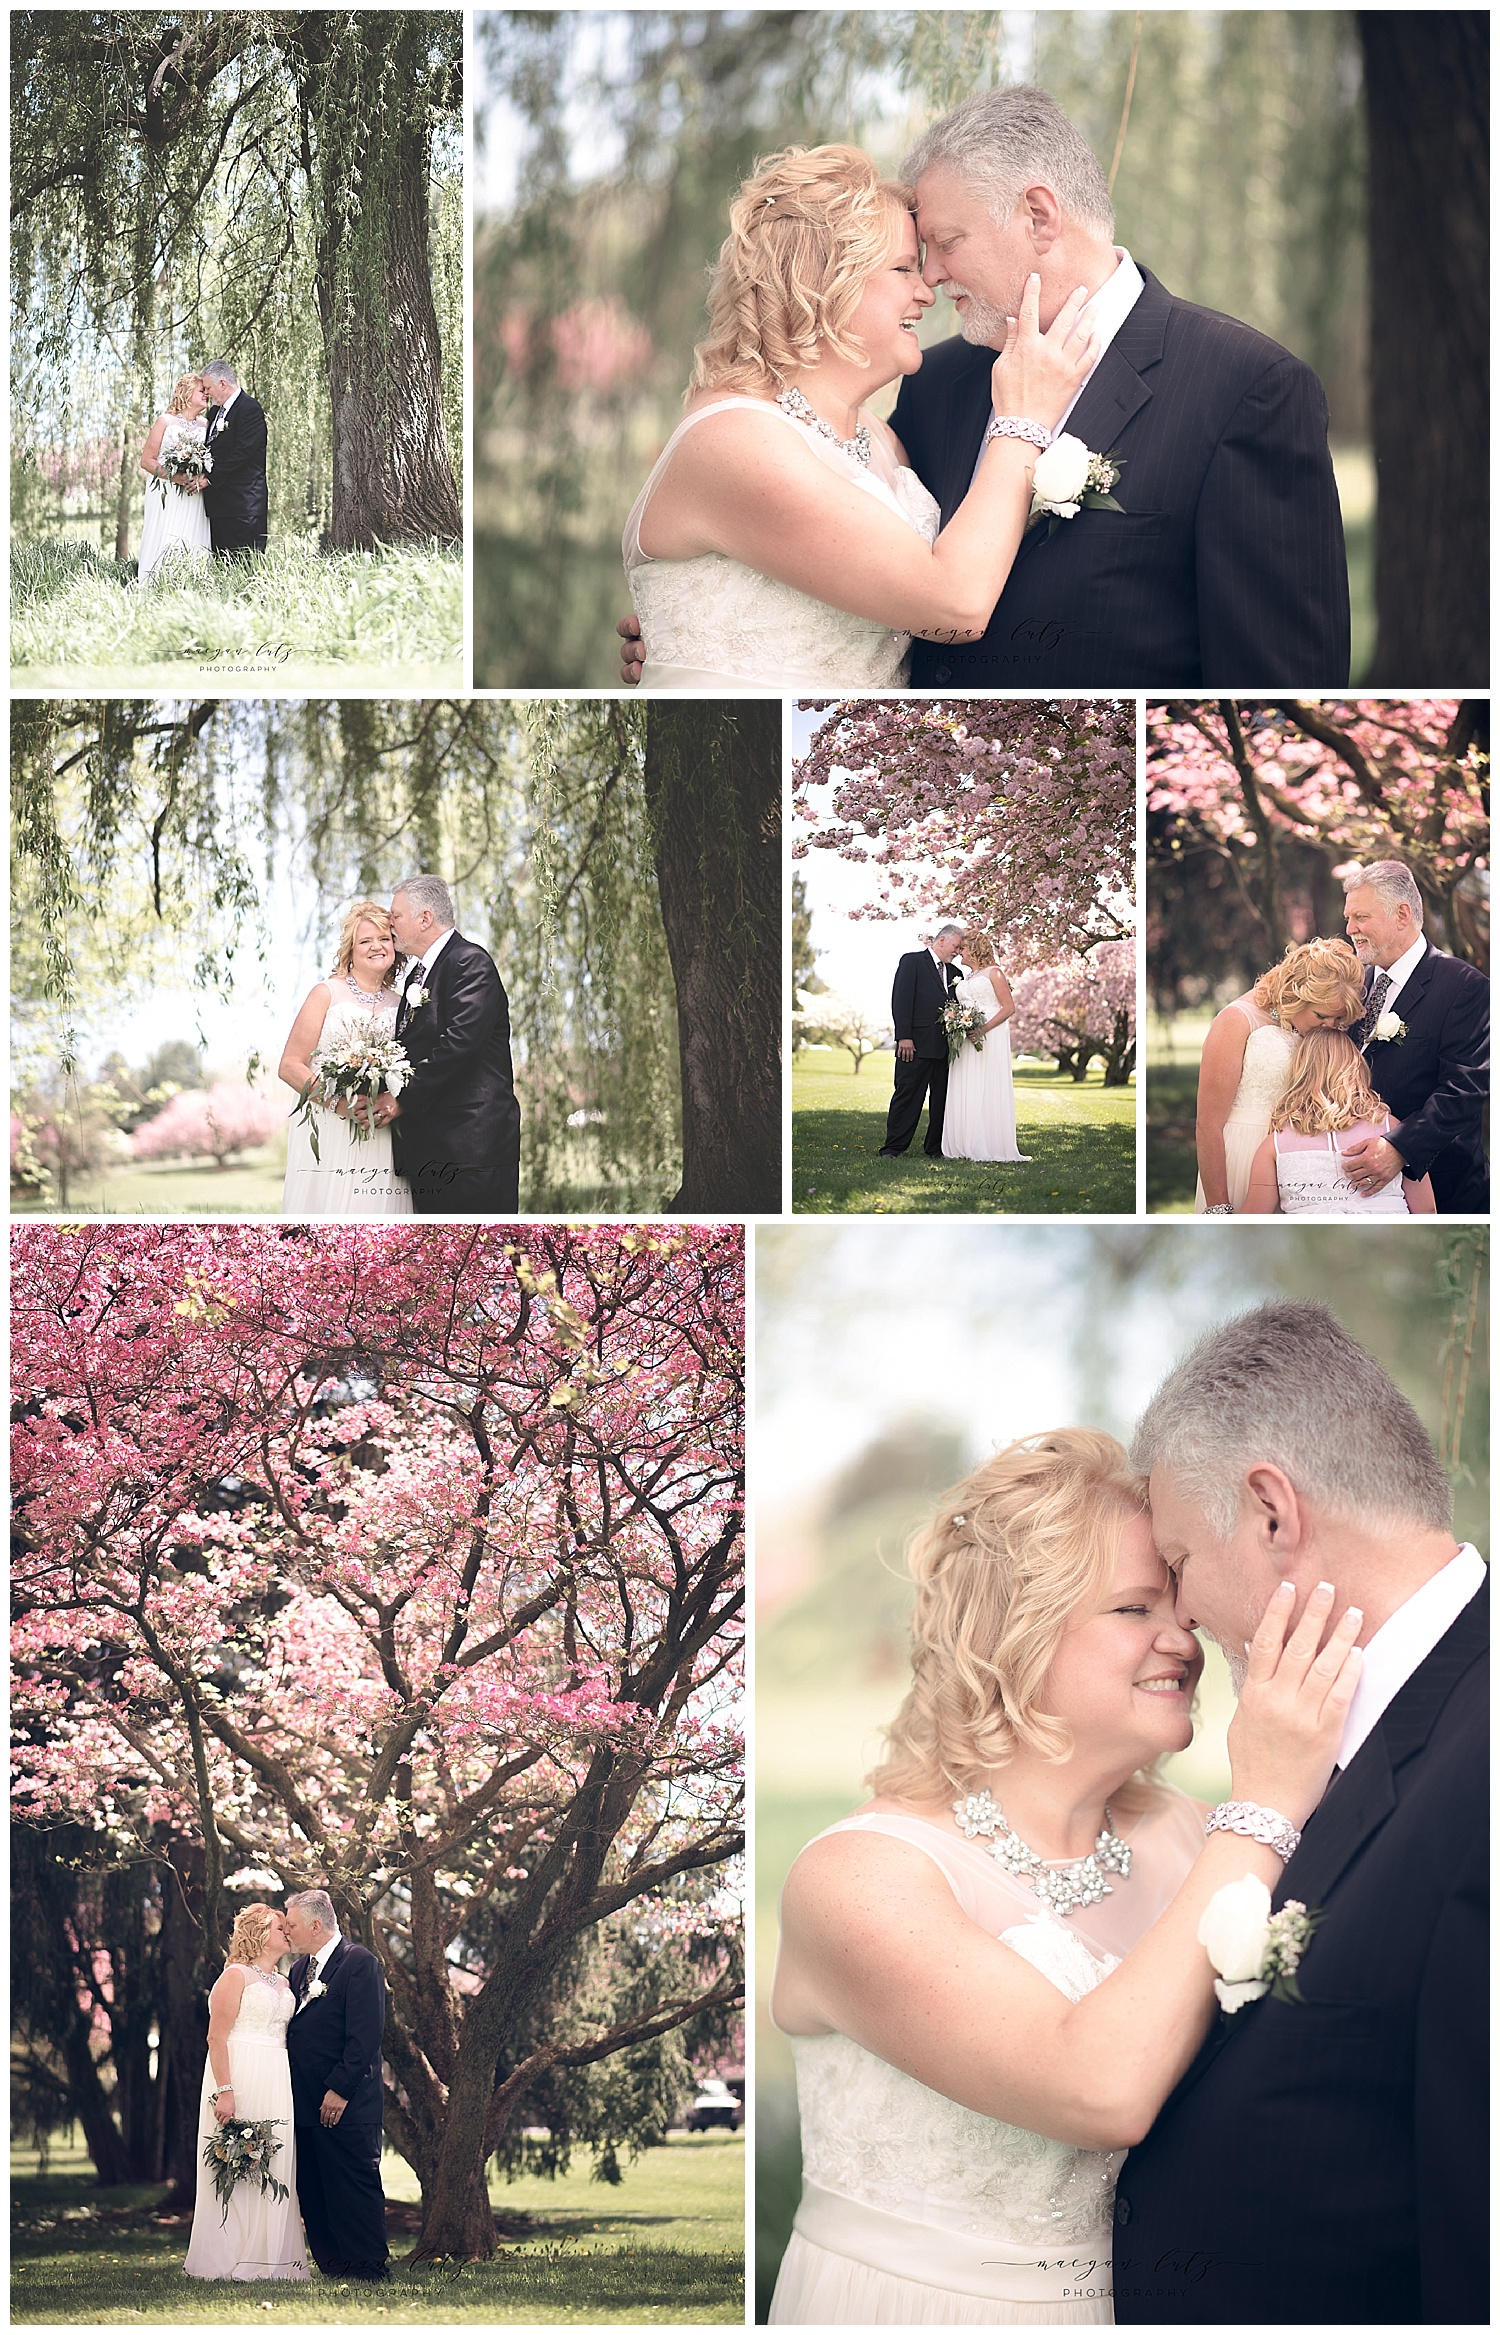 Wedding Photographer at the Rose Garden in Allentown, PA